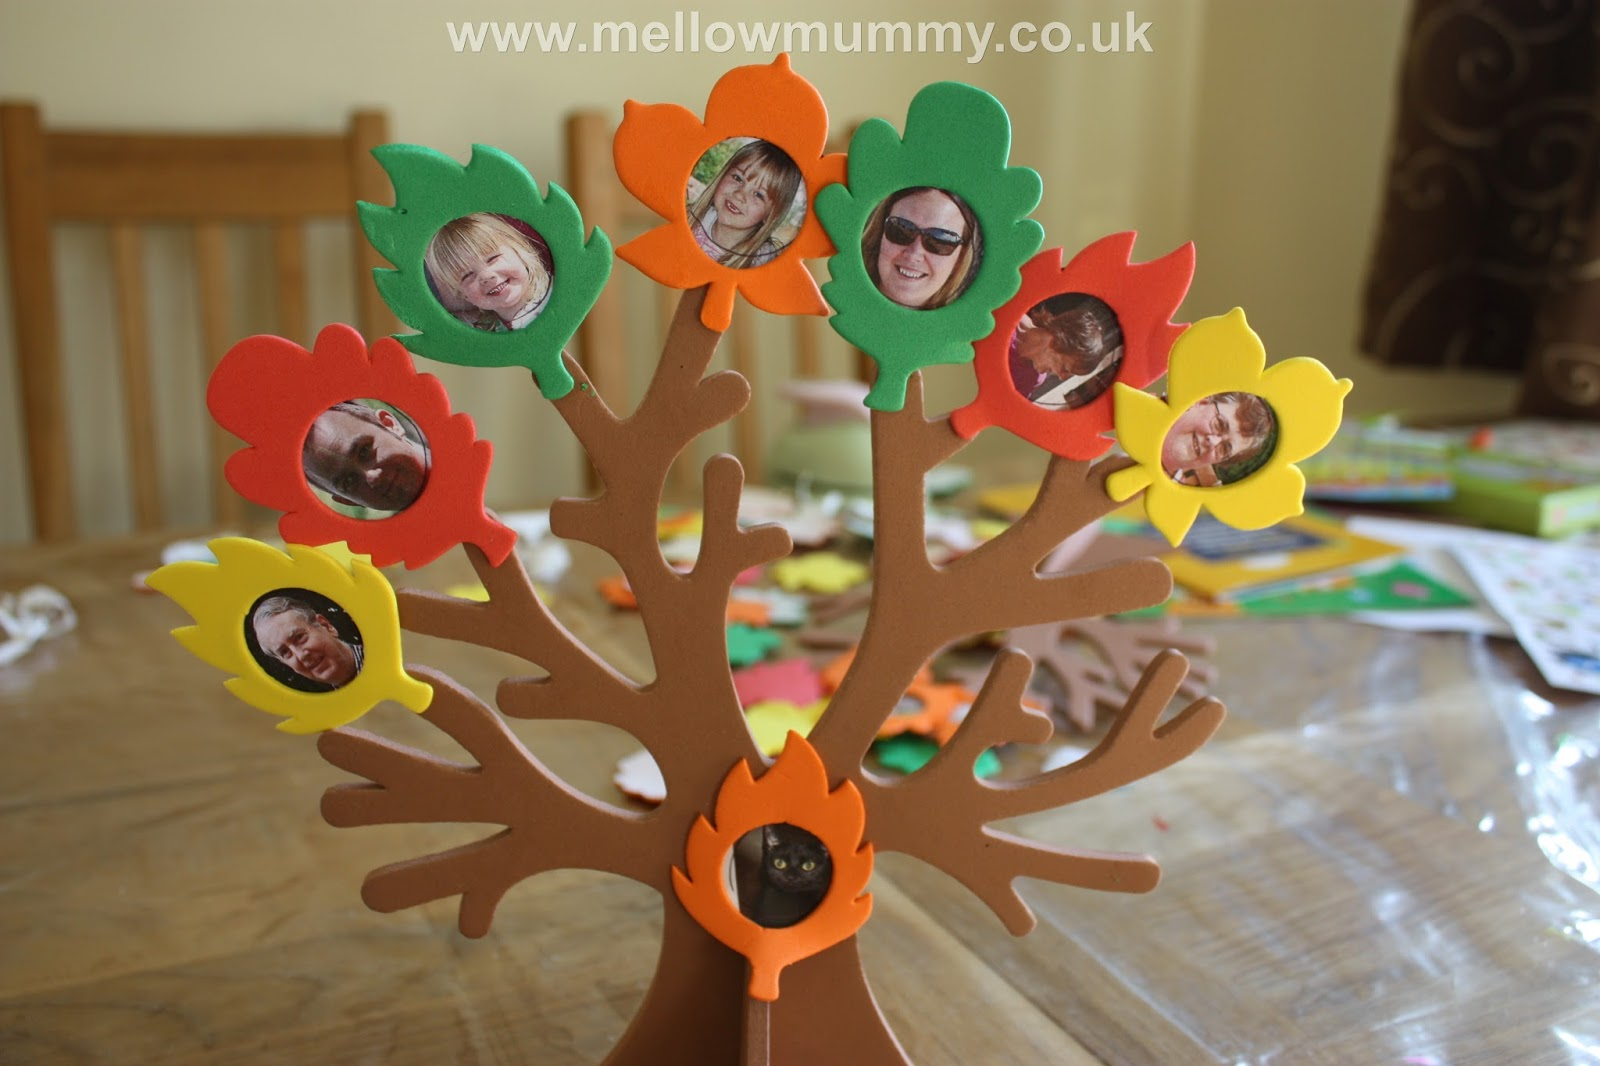 Mellow Mummy Autumn Inspired Craft Ideas From Yellow Moon Taking